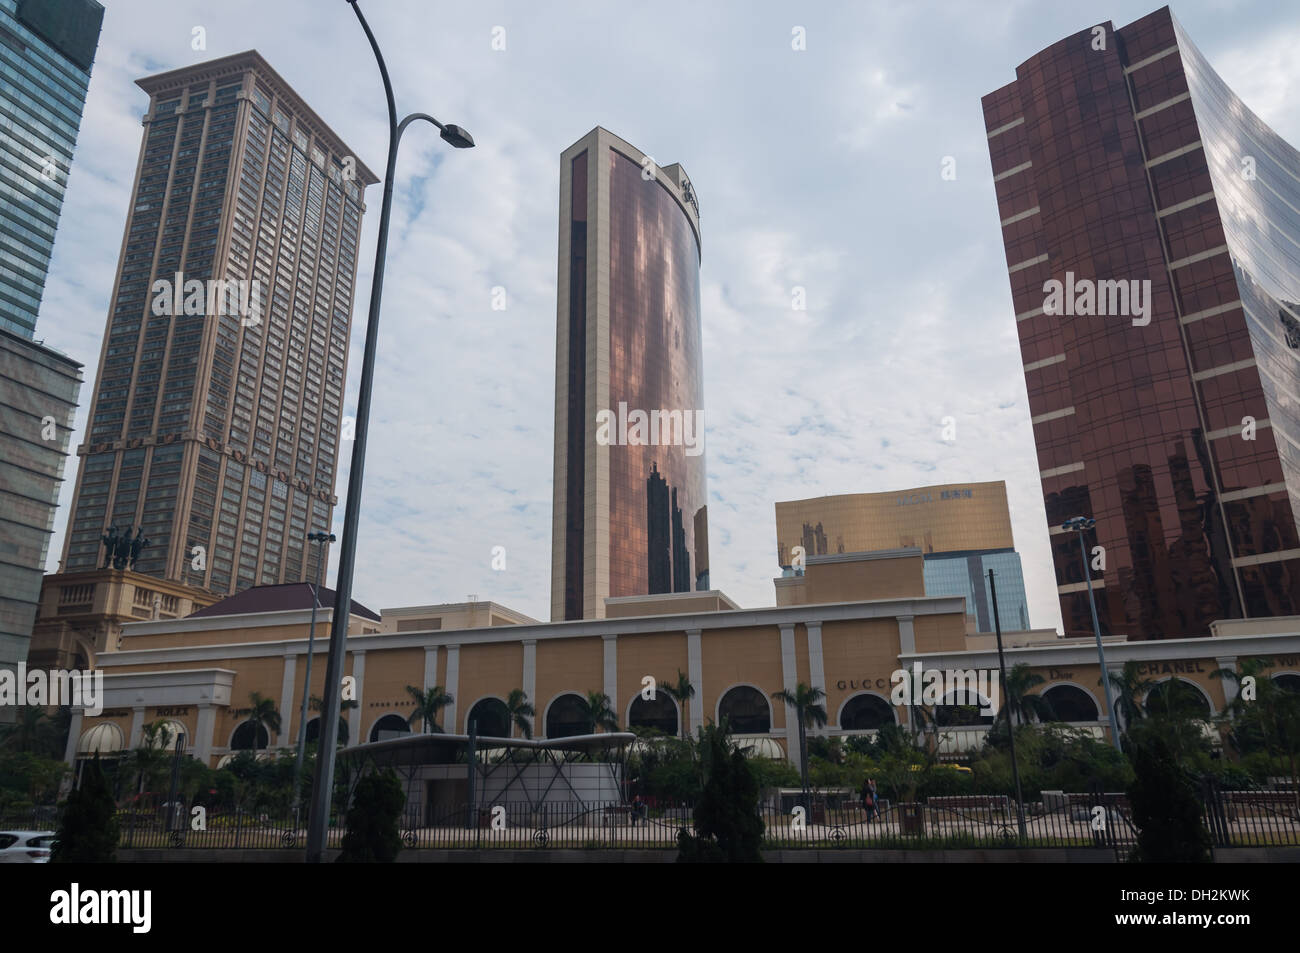 Casinos in Macau, including the MGM and the Wynn. - Stock Image